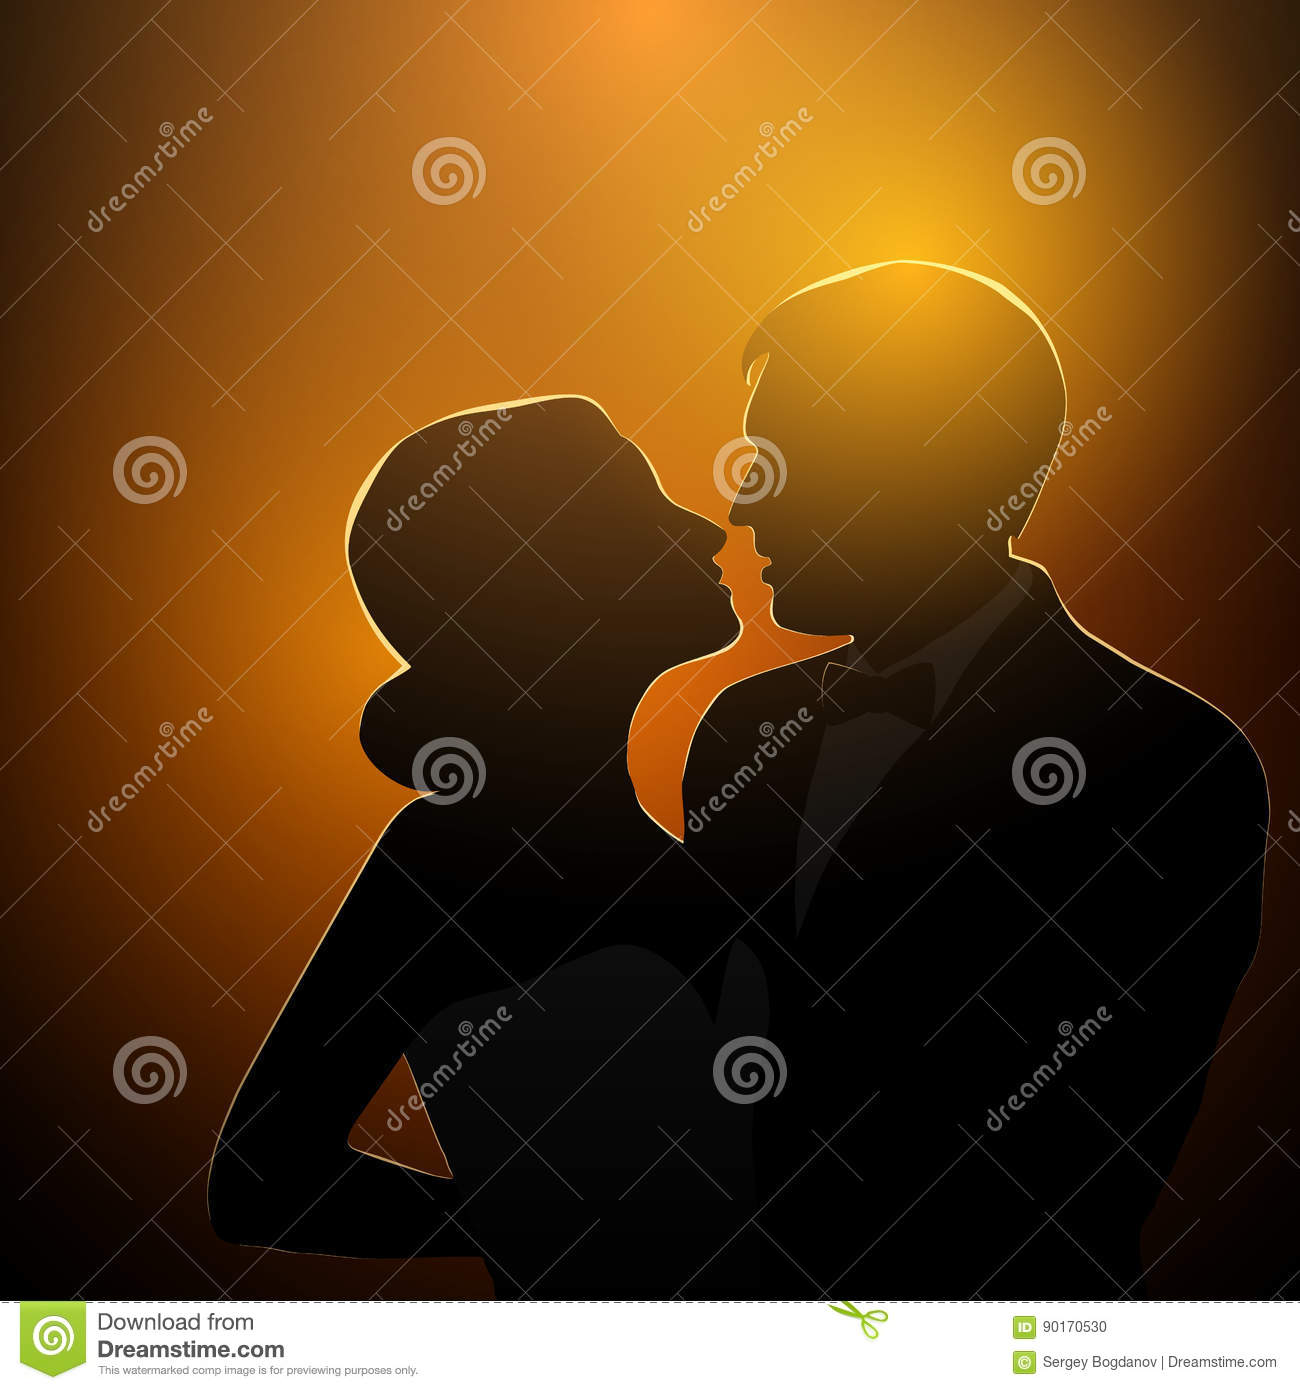 dating couple silhouette vector